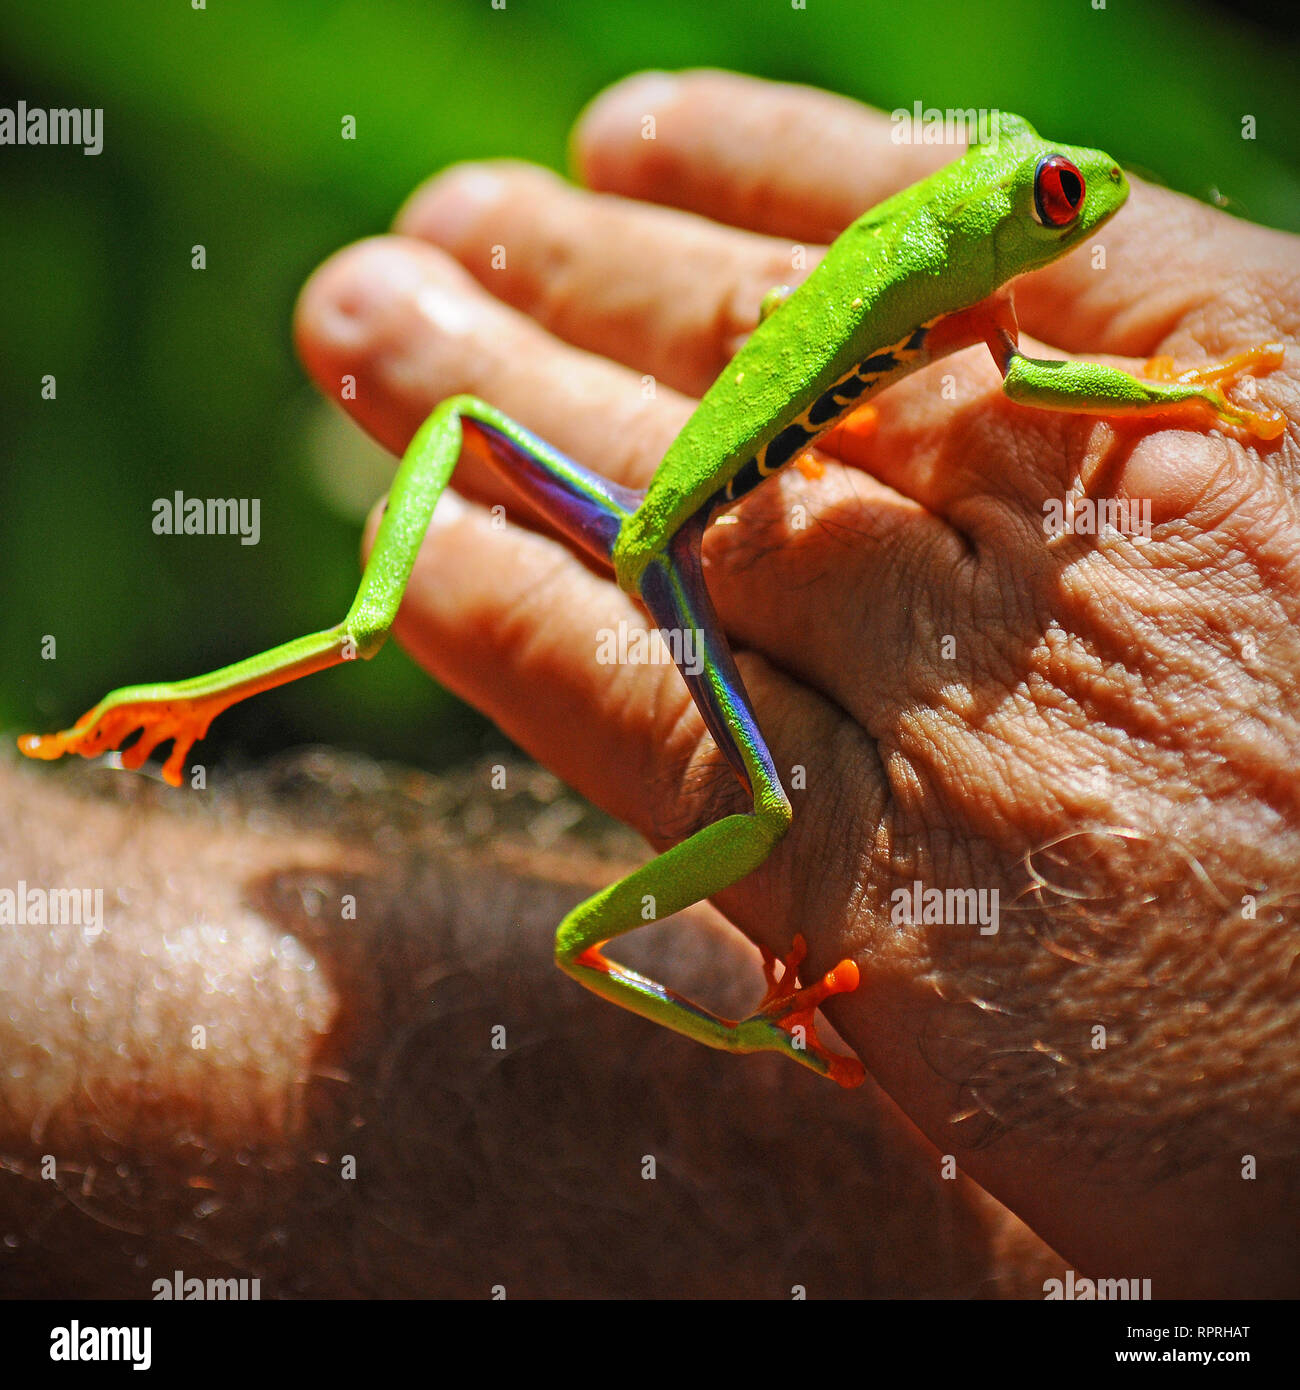 A Red Eyed Tree frog or Gaudy Leaf Frog (Agalychnis Callidryas) on a human hand inside the Tortuguero national park, Costa Rica. - Stock Image